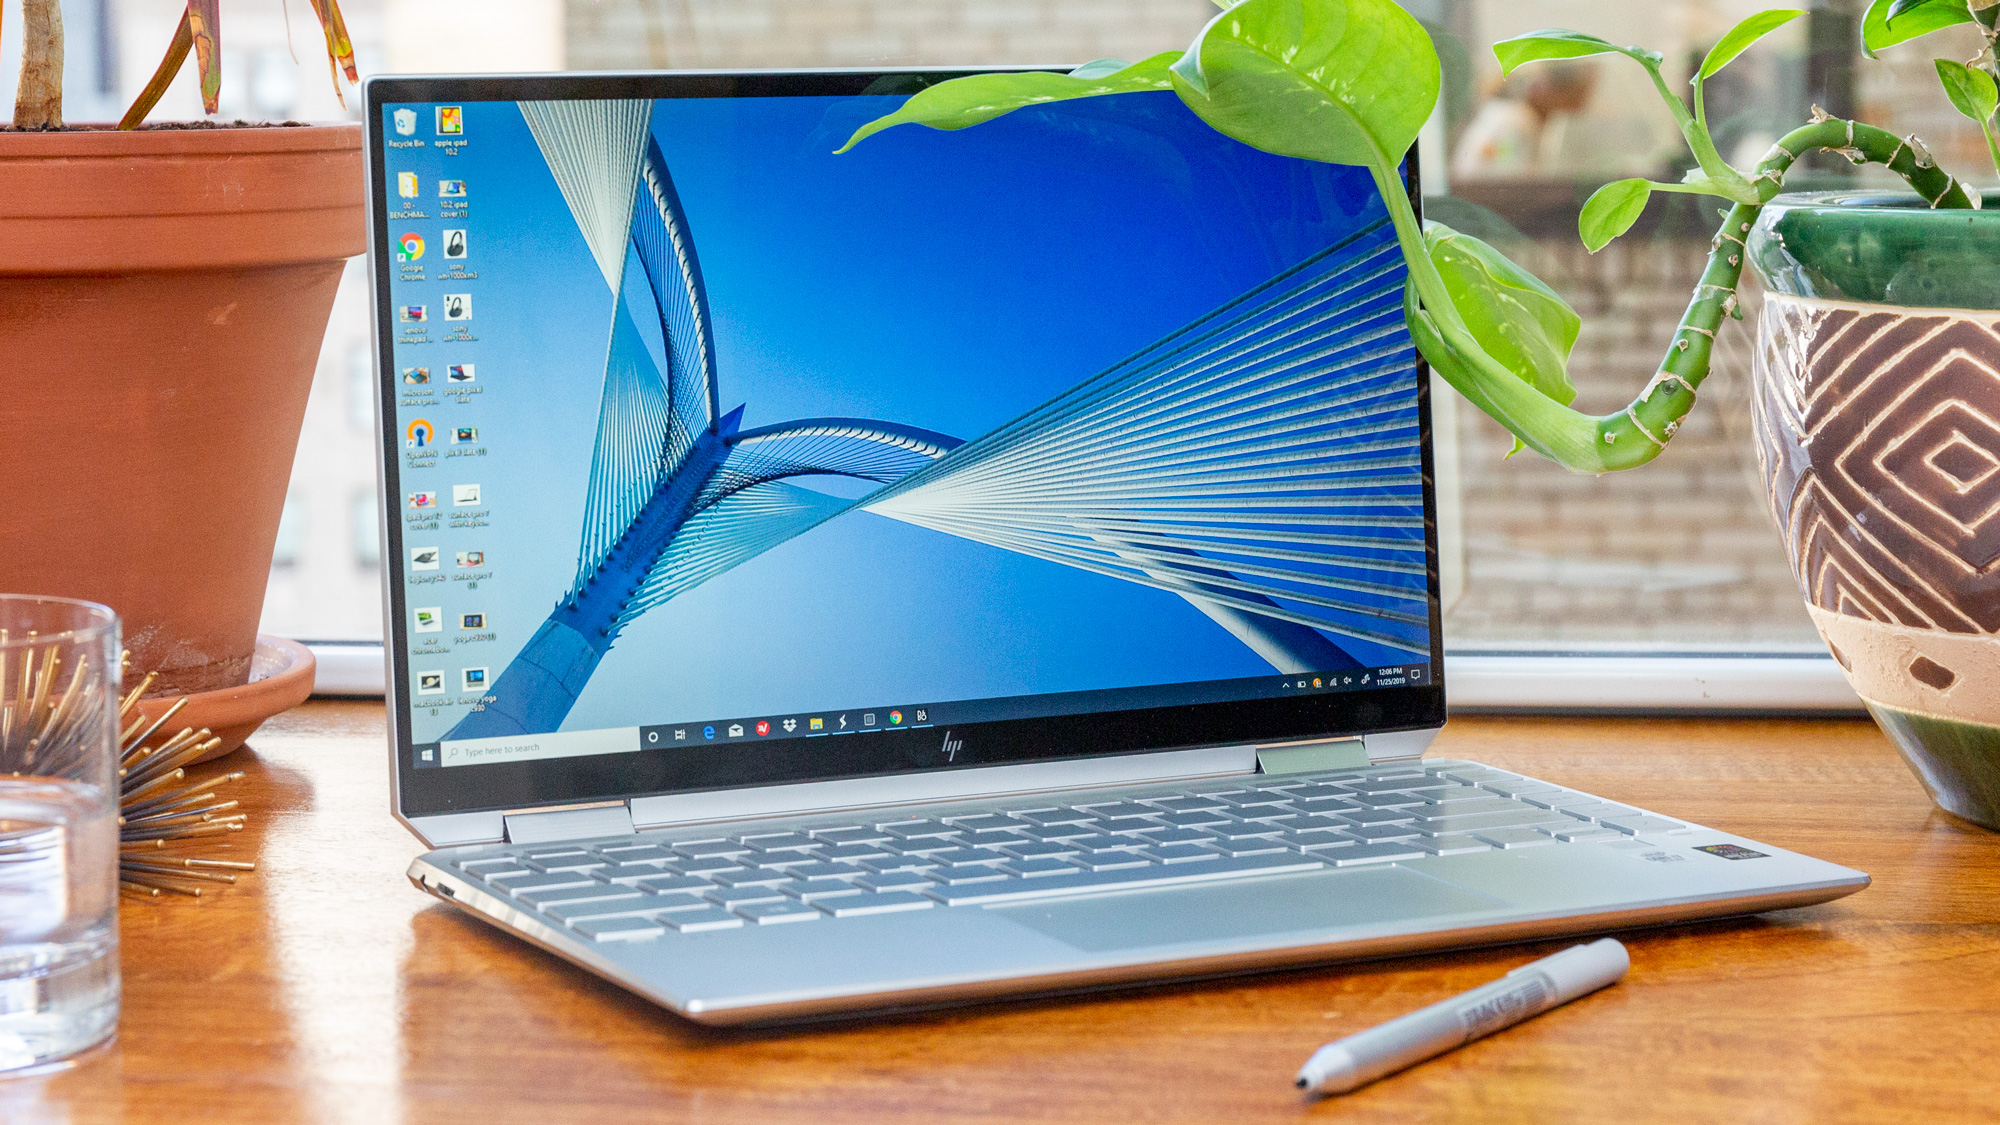 Offering beauty and brawn, the HP Spectre x360 13 is among the best 13-inch laptops.